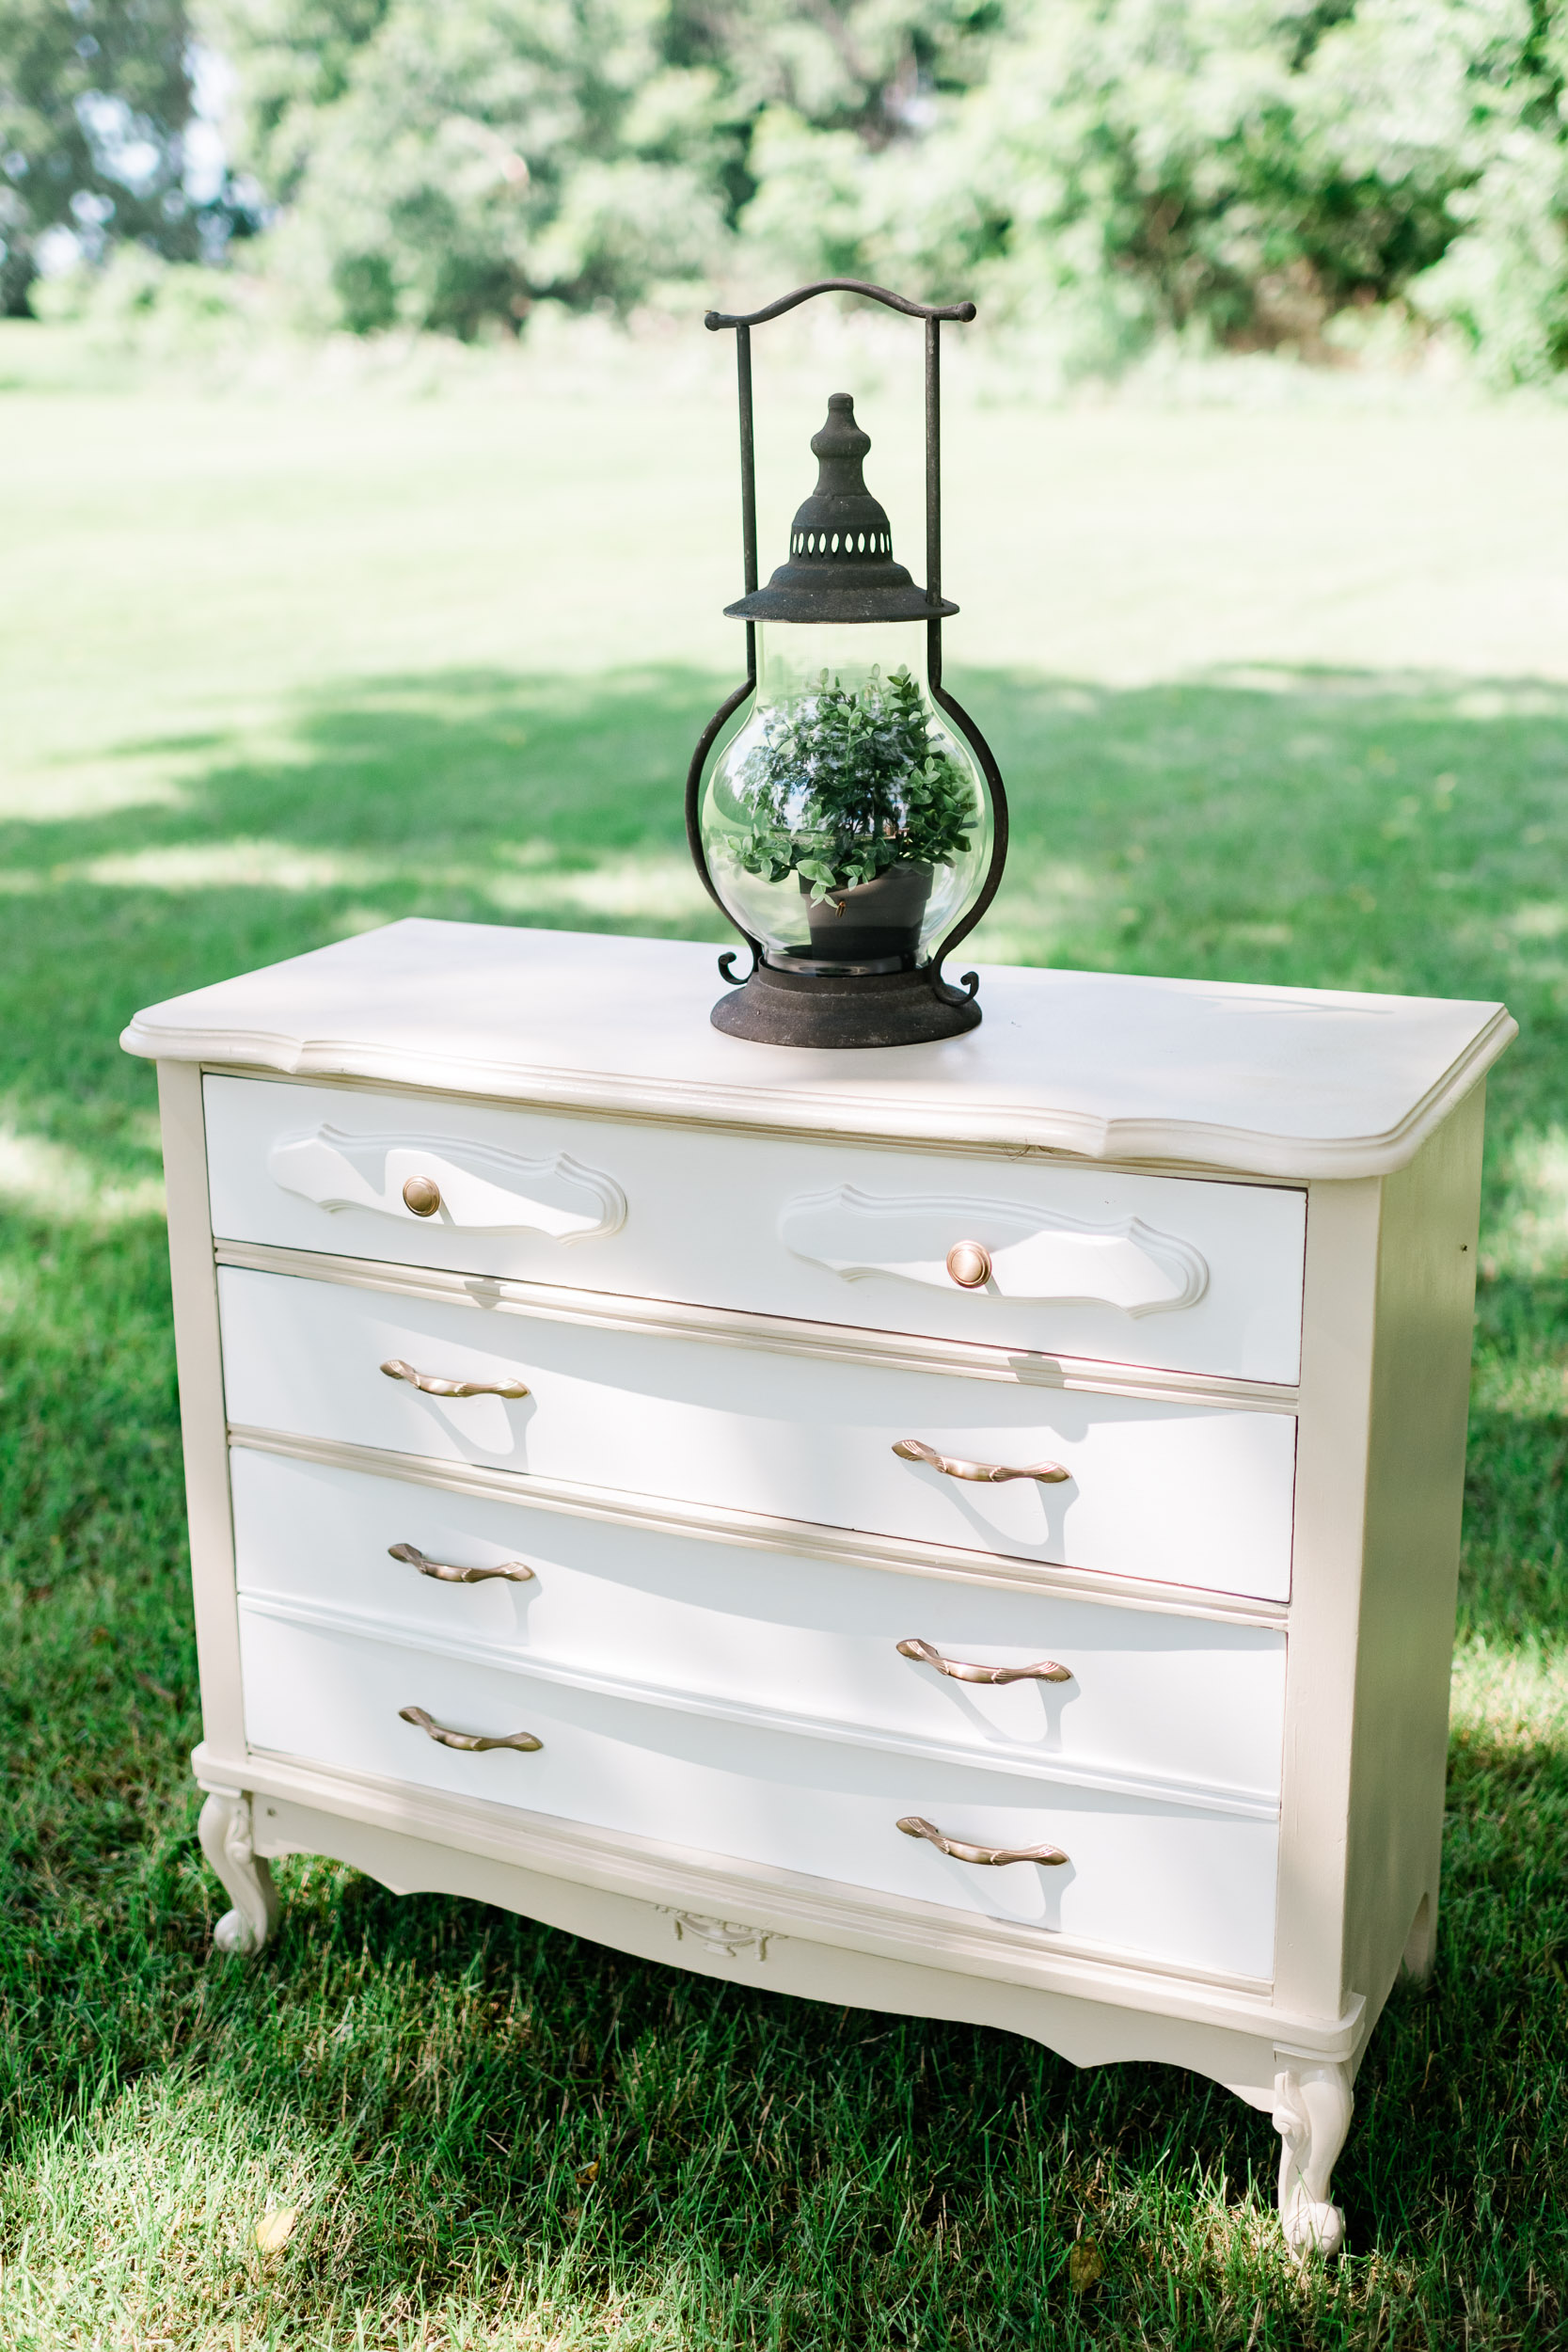 Dresser with a lantern on top